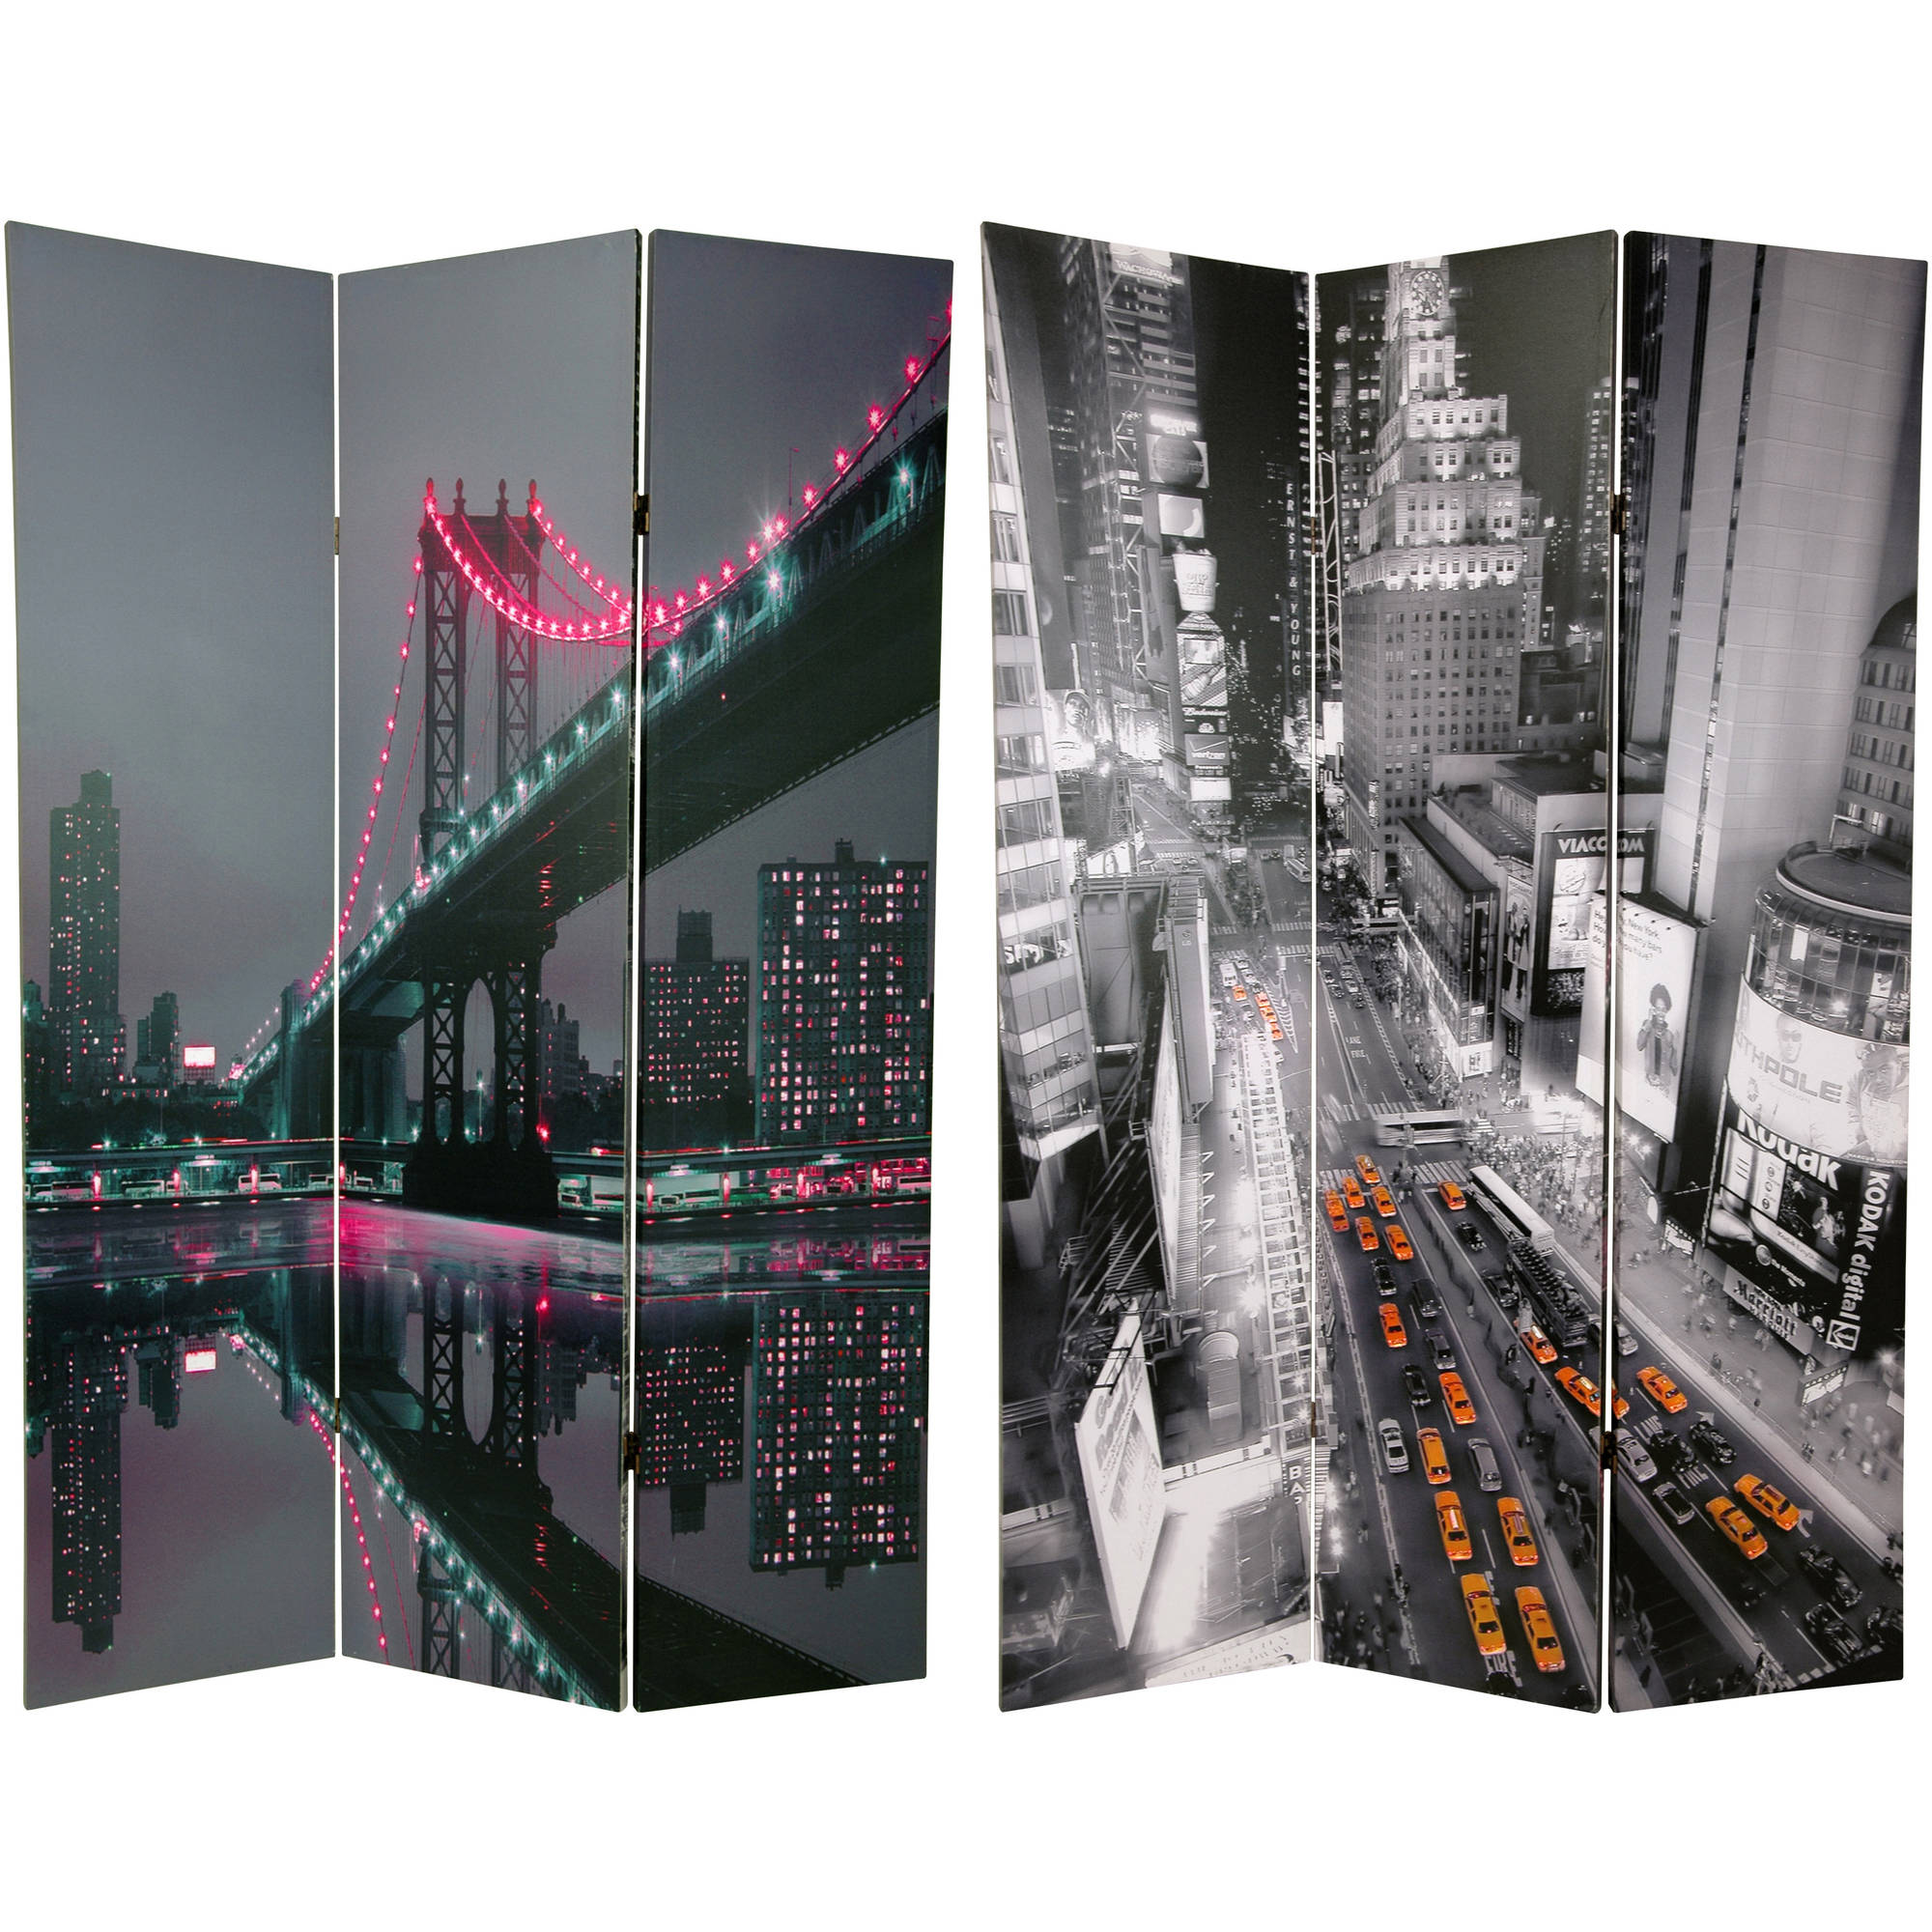 6' Tall New York State of Mind Room Divider